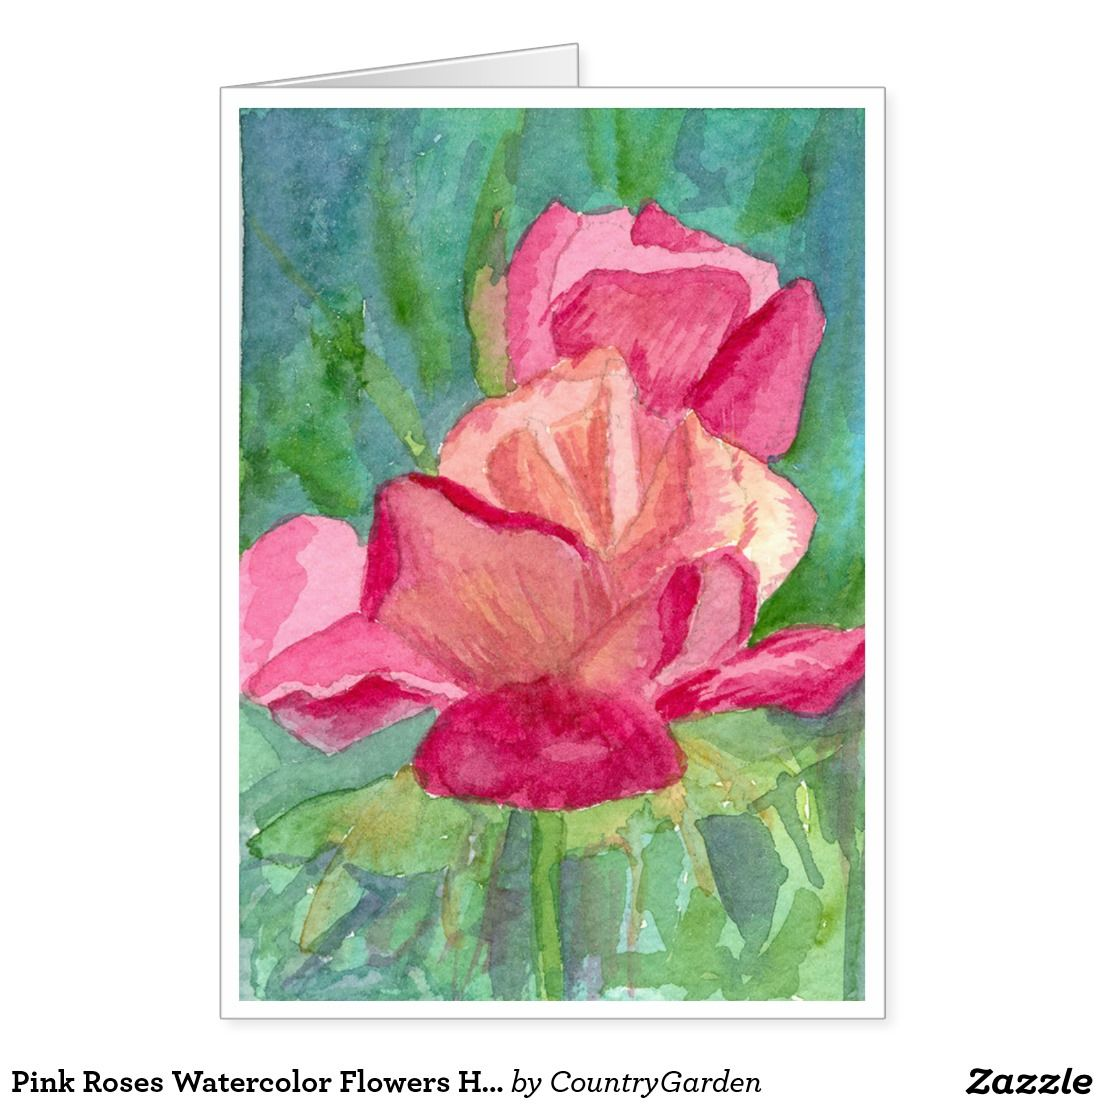 Pink roses watercolor flowers happy birthday card happy birthday cards pink roses watercolor flowers happy birthday card izmirmasajfo